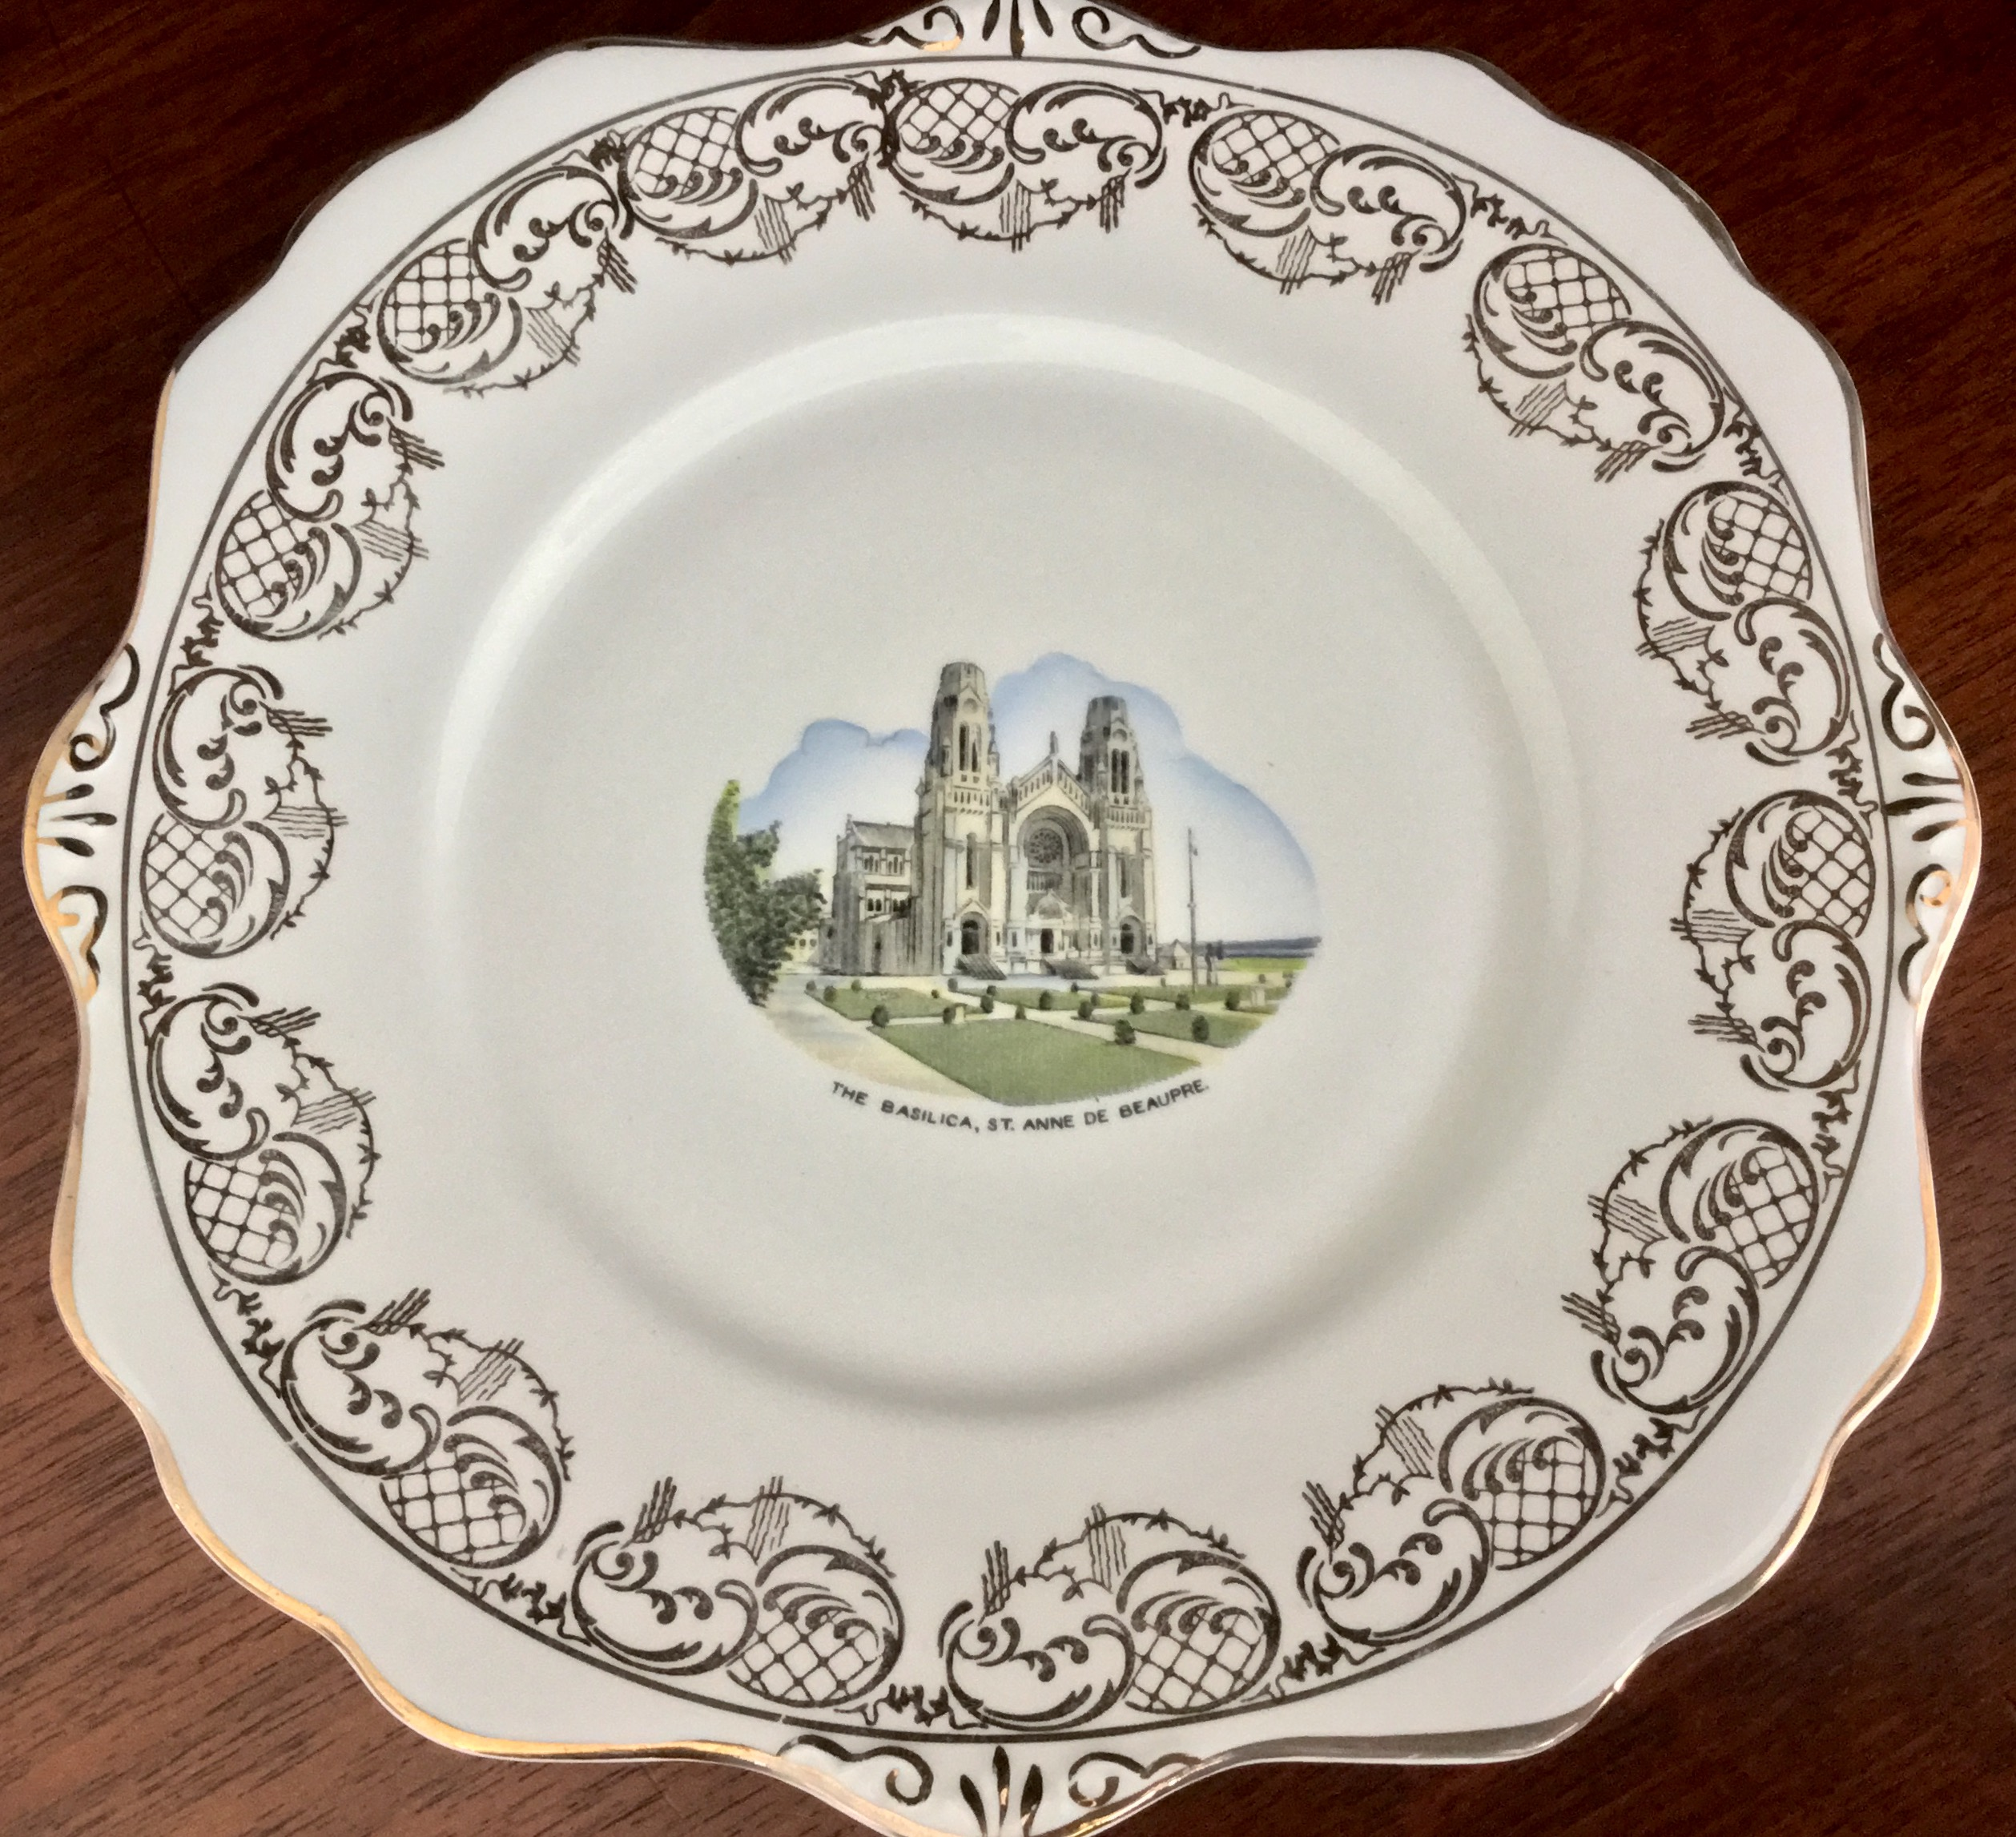 Royal Stafford, The Basilica St. Anne de Beaupre Plate